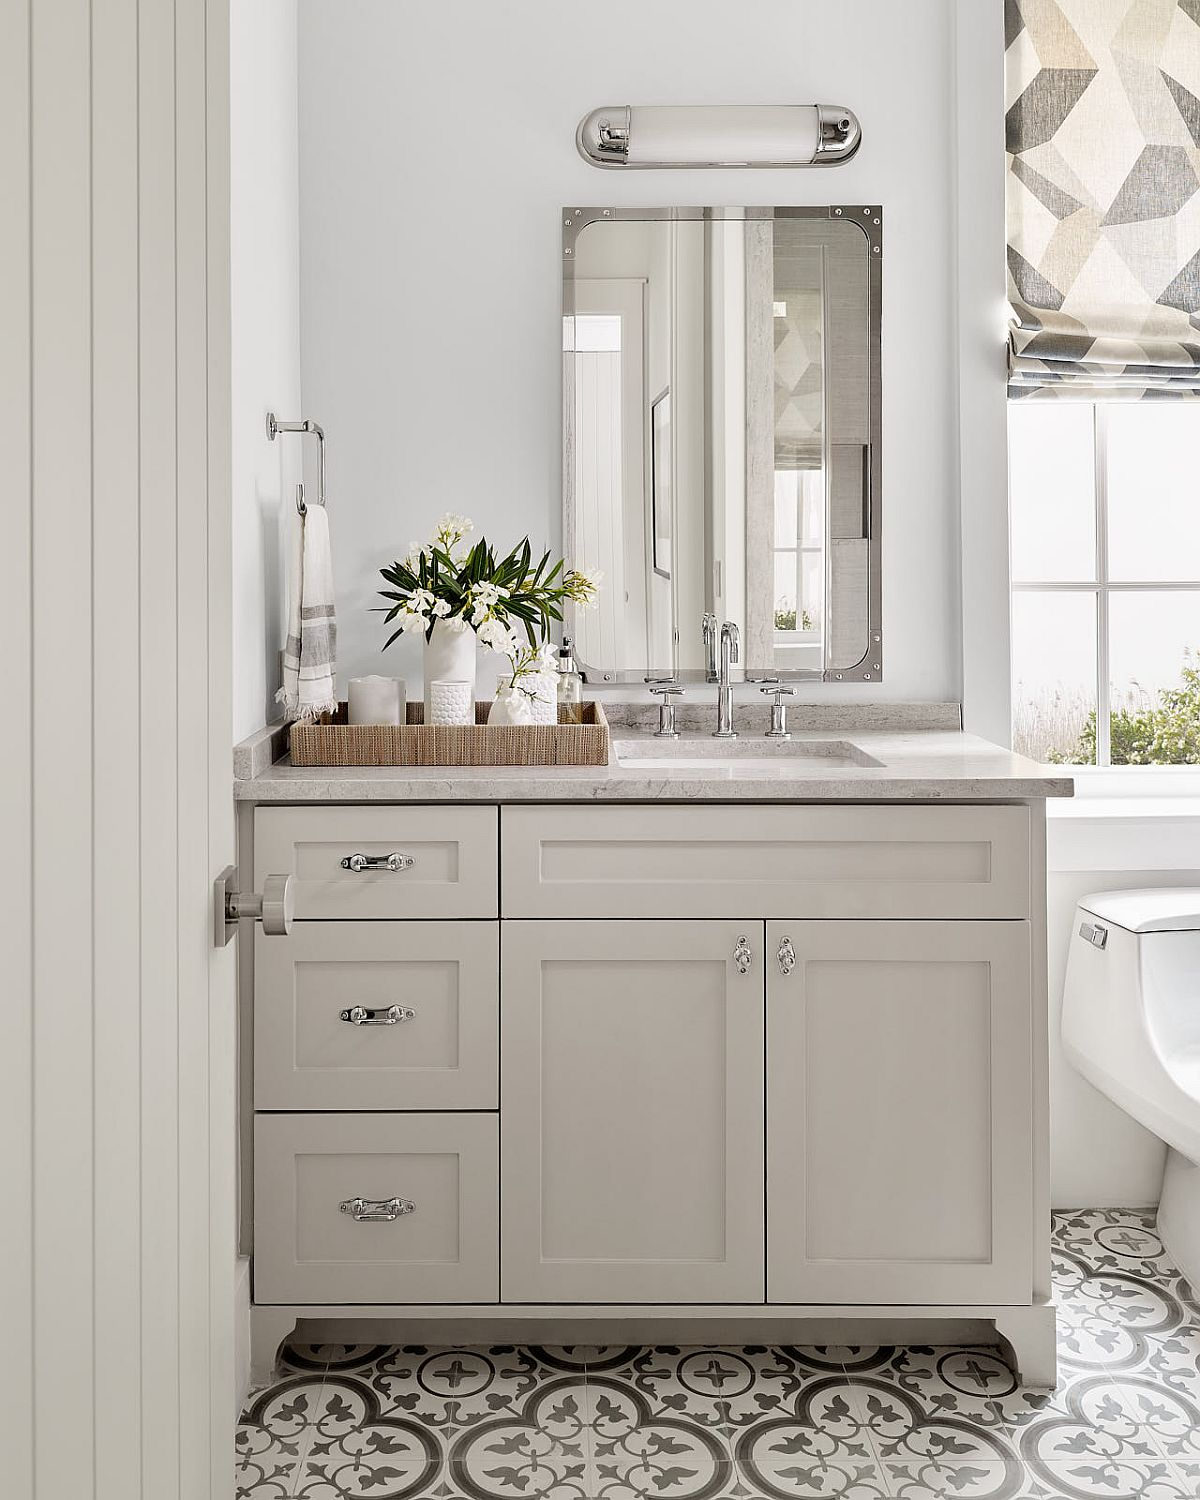 Tiles add pattern to the beach style bathroom without altering its color scheme